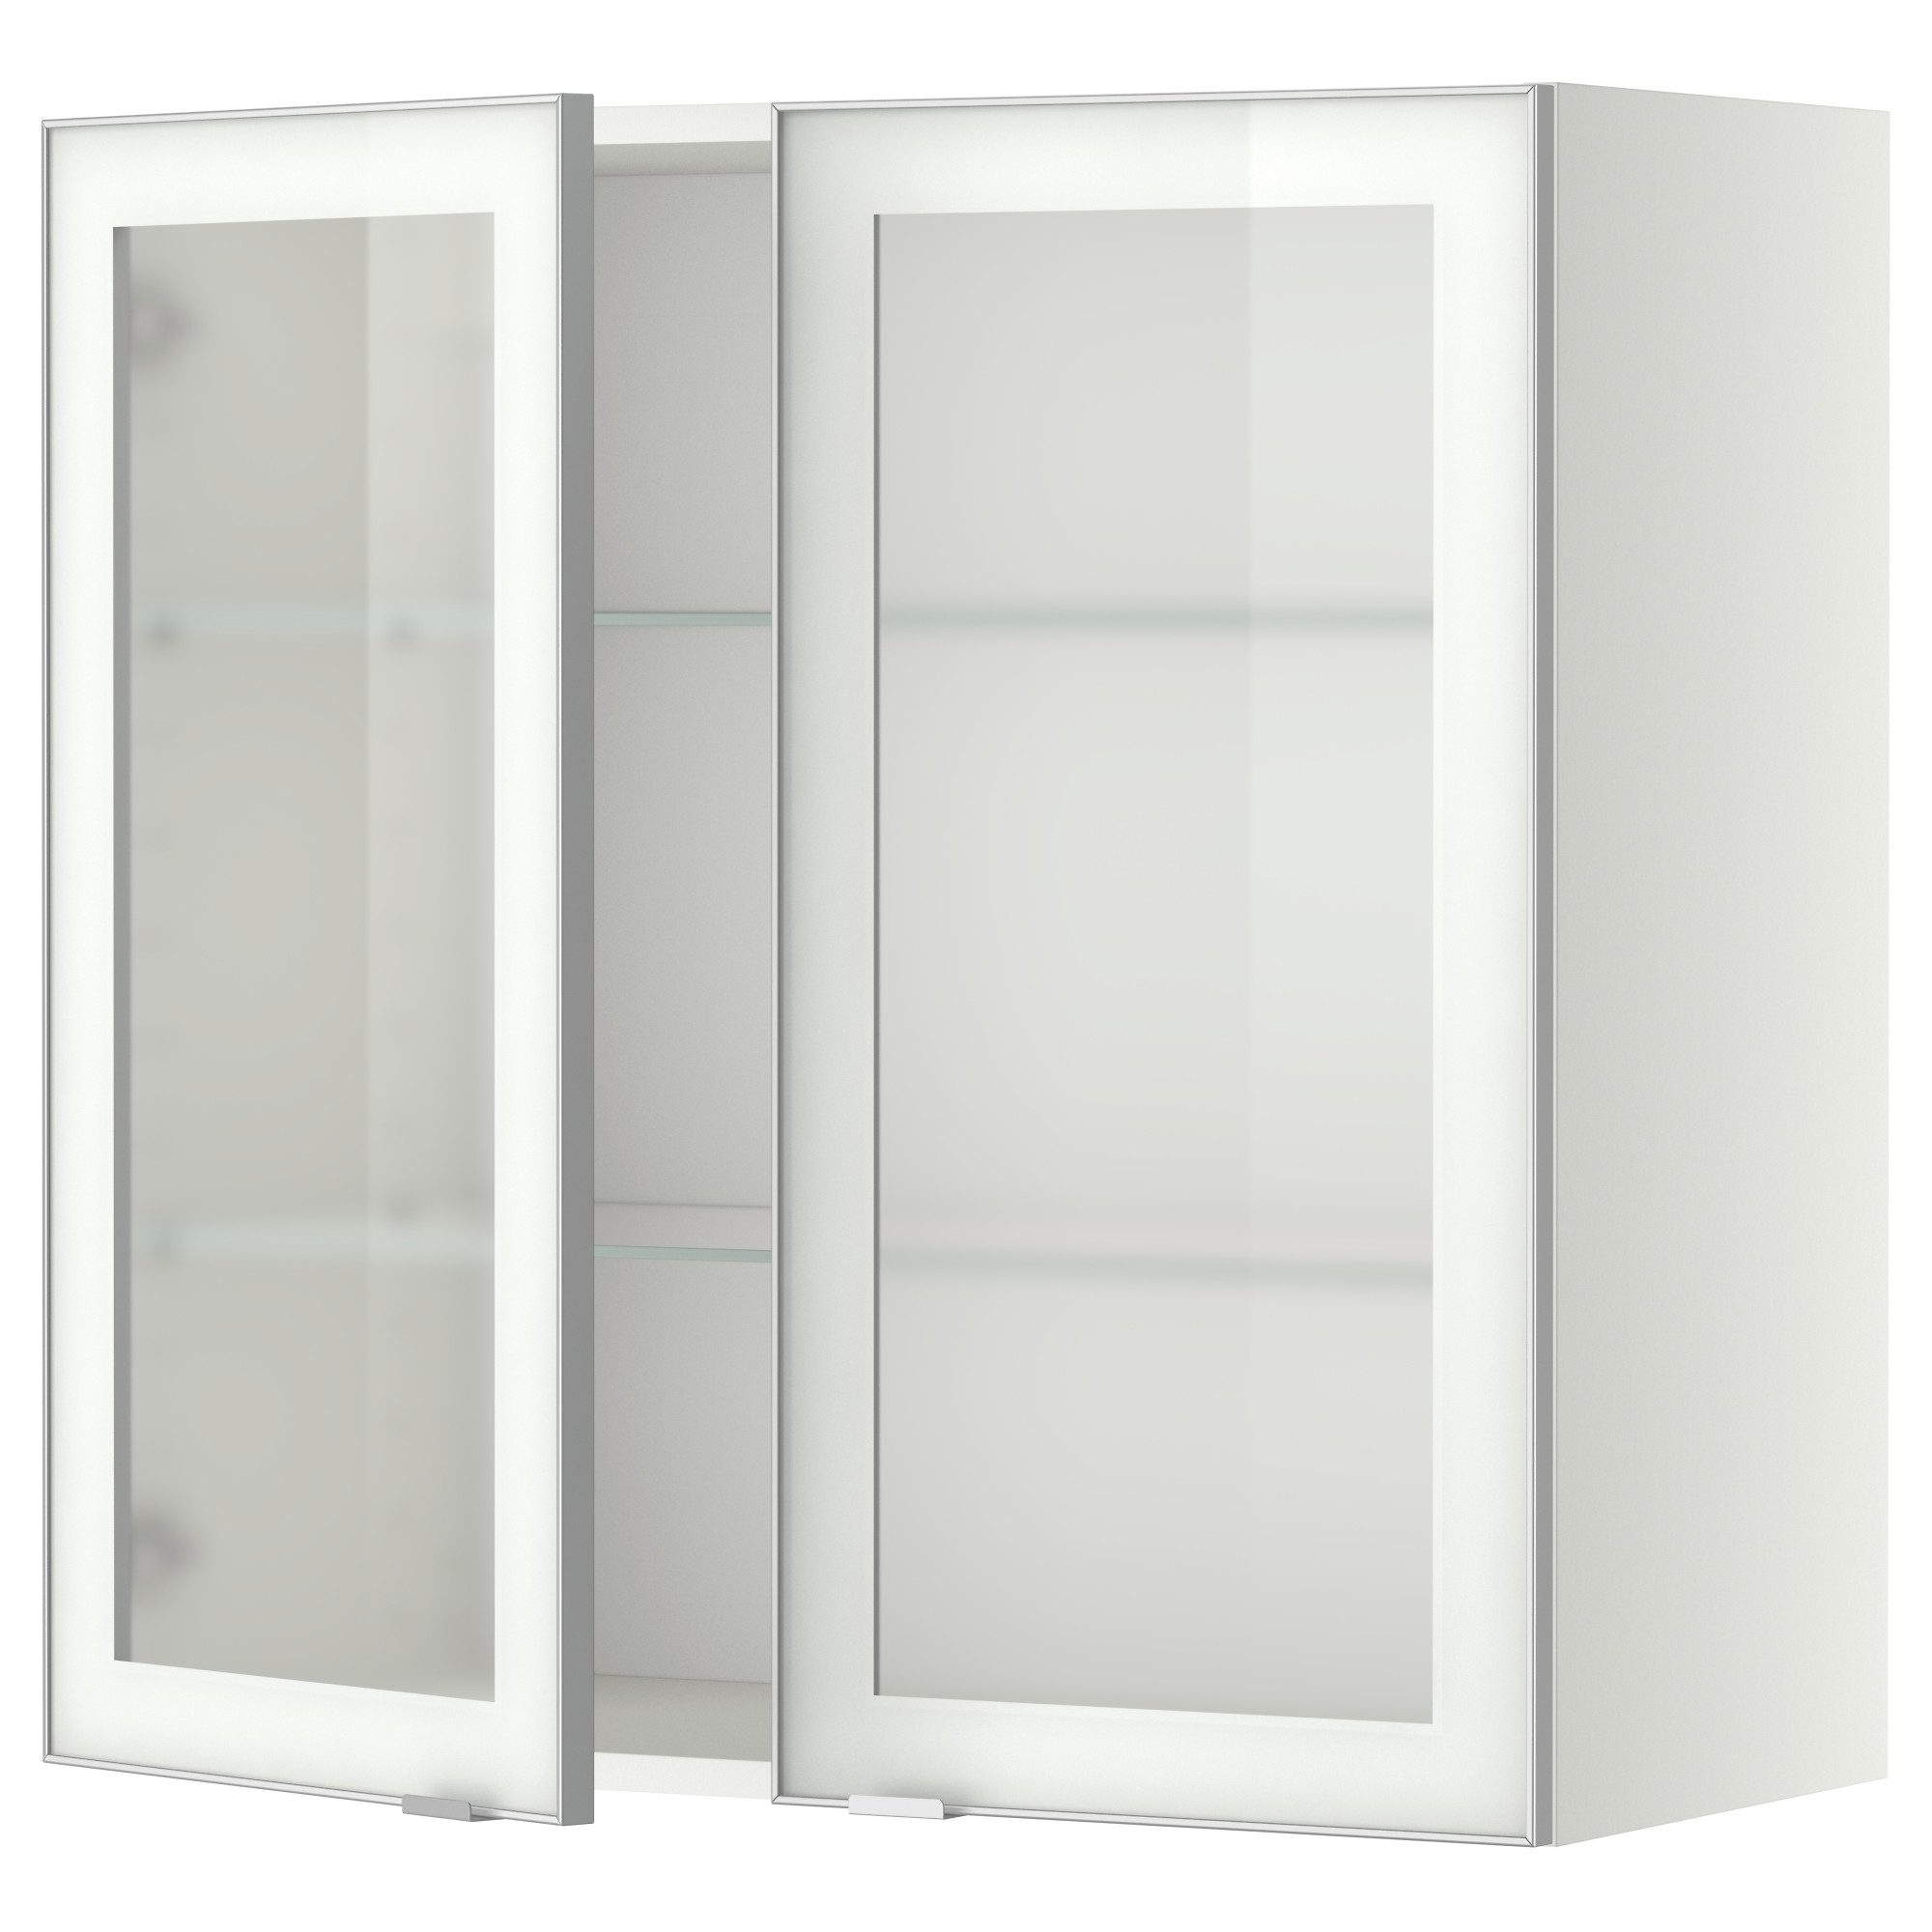 white kitchen cabinets frosted glass photo - 10